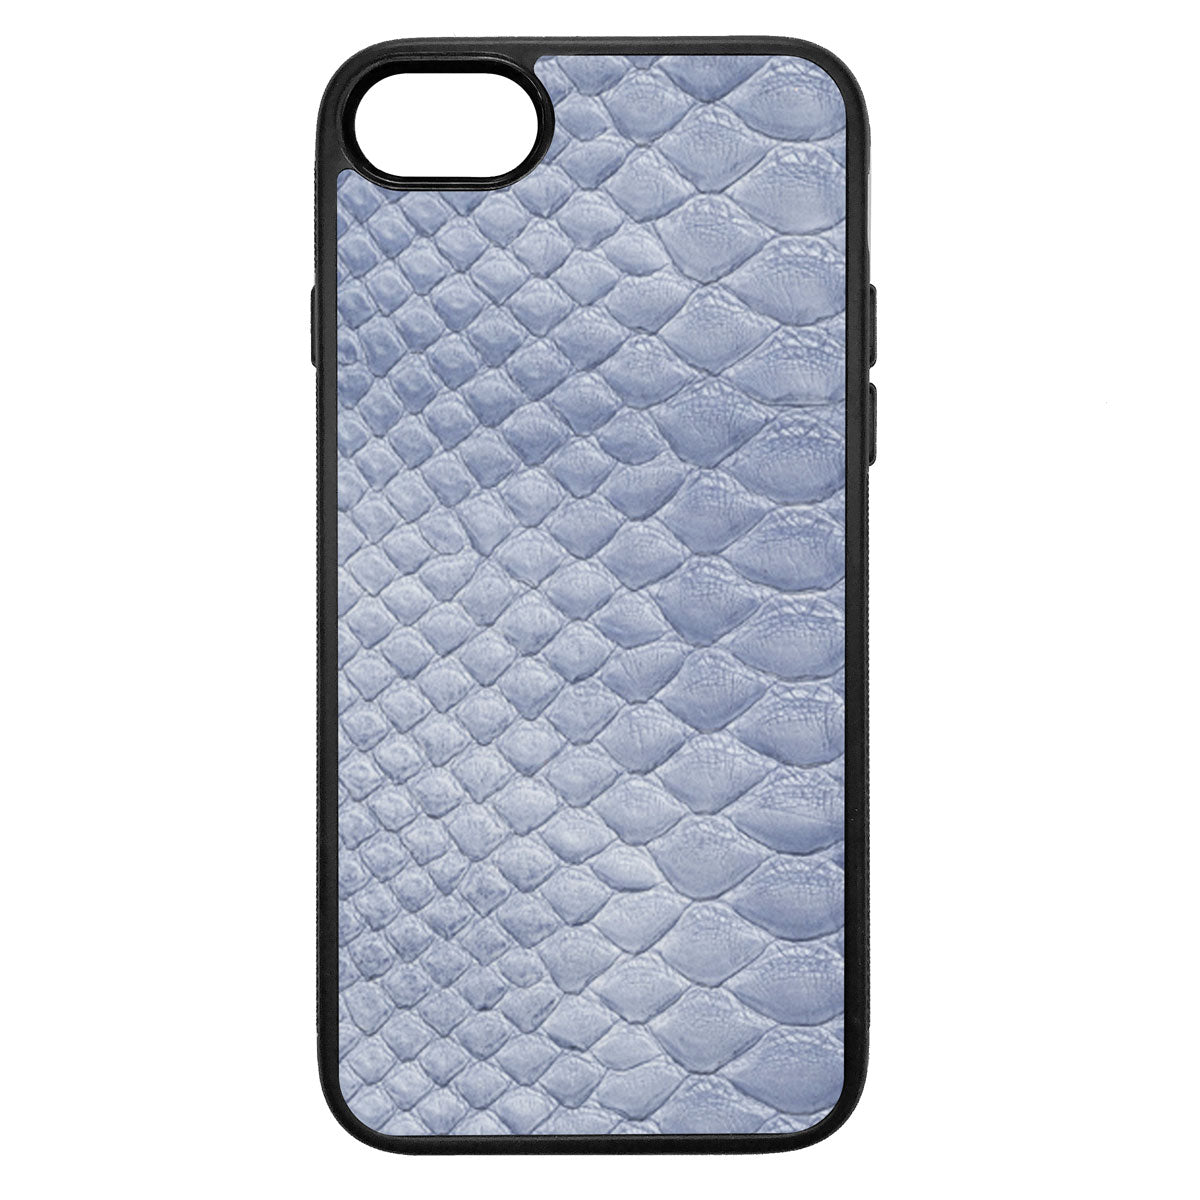 Sea Python Back iPhone 7 Leather Case